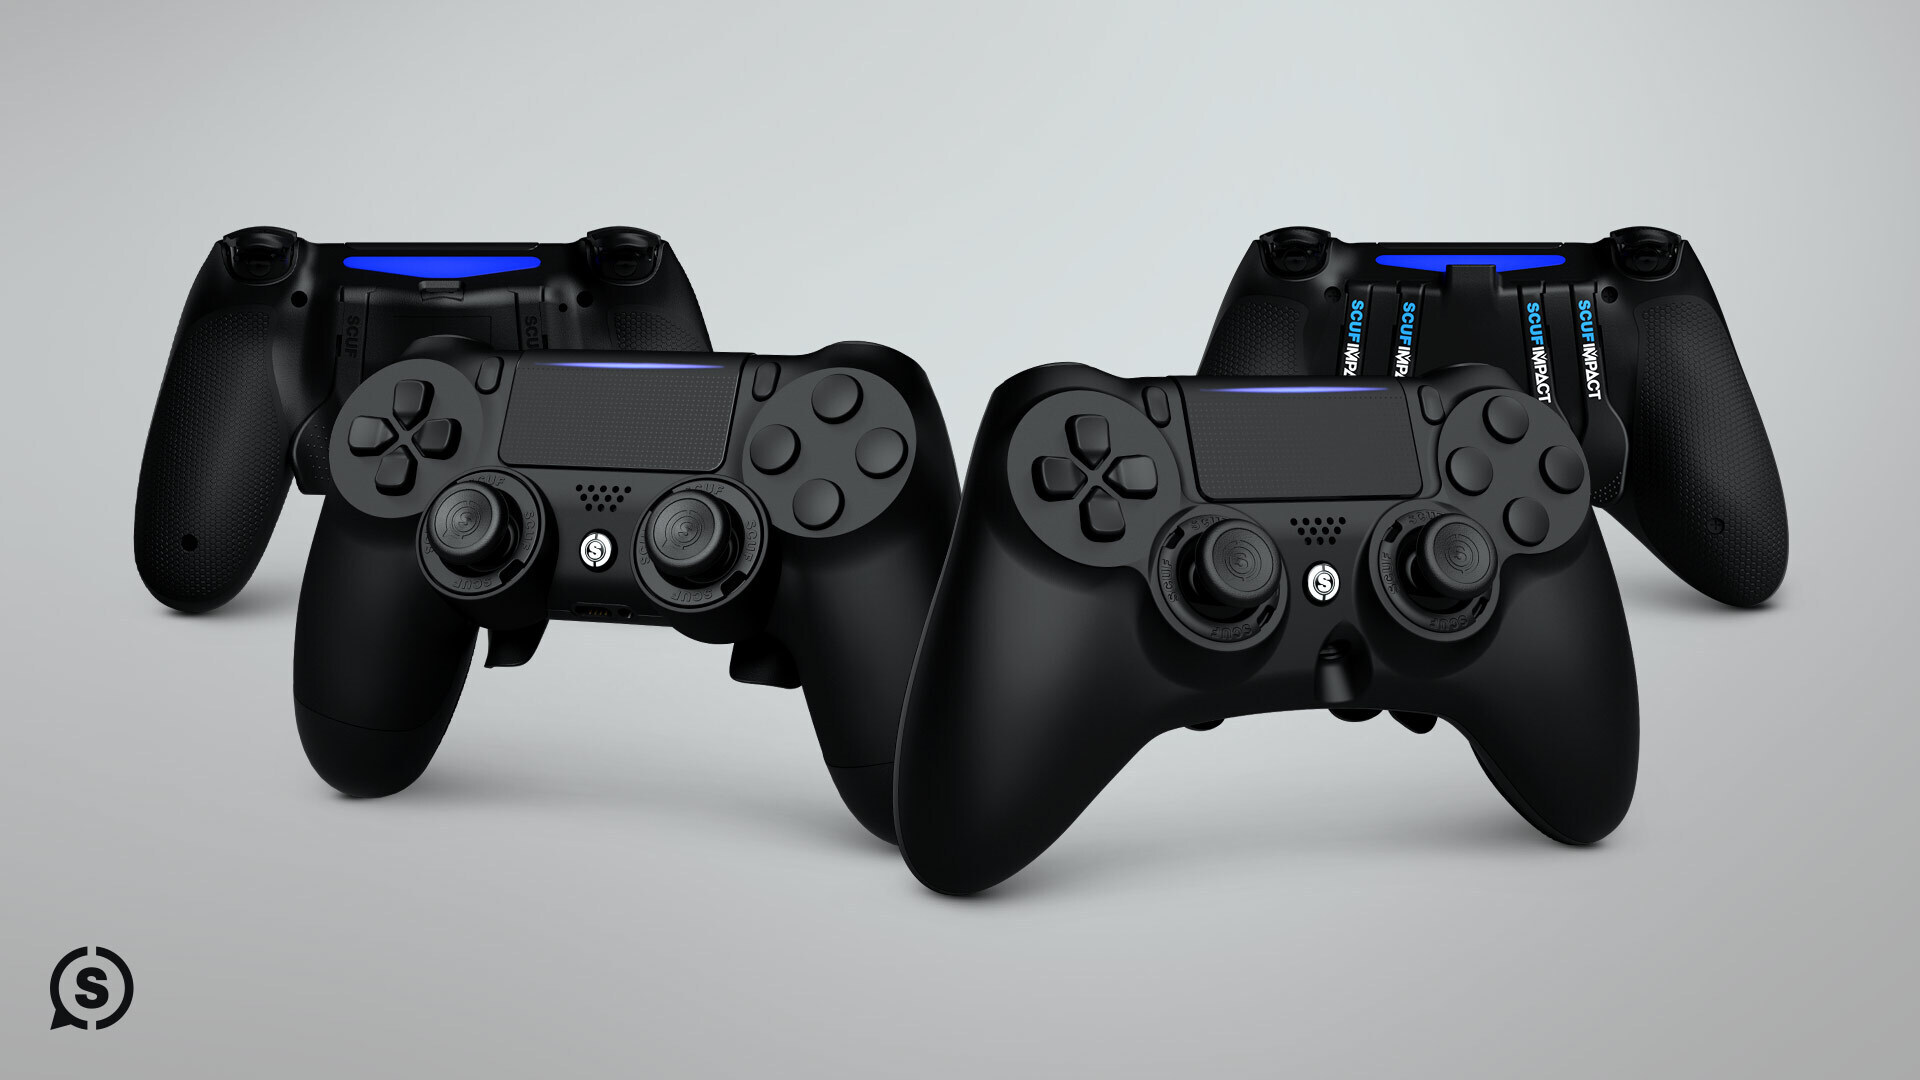 SCUF IMPACT AND INFINITY 4PS PRO FOR PLAYSTATION AND PC